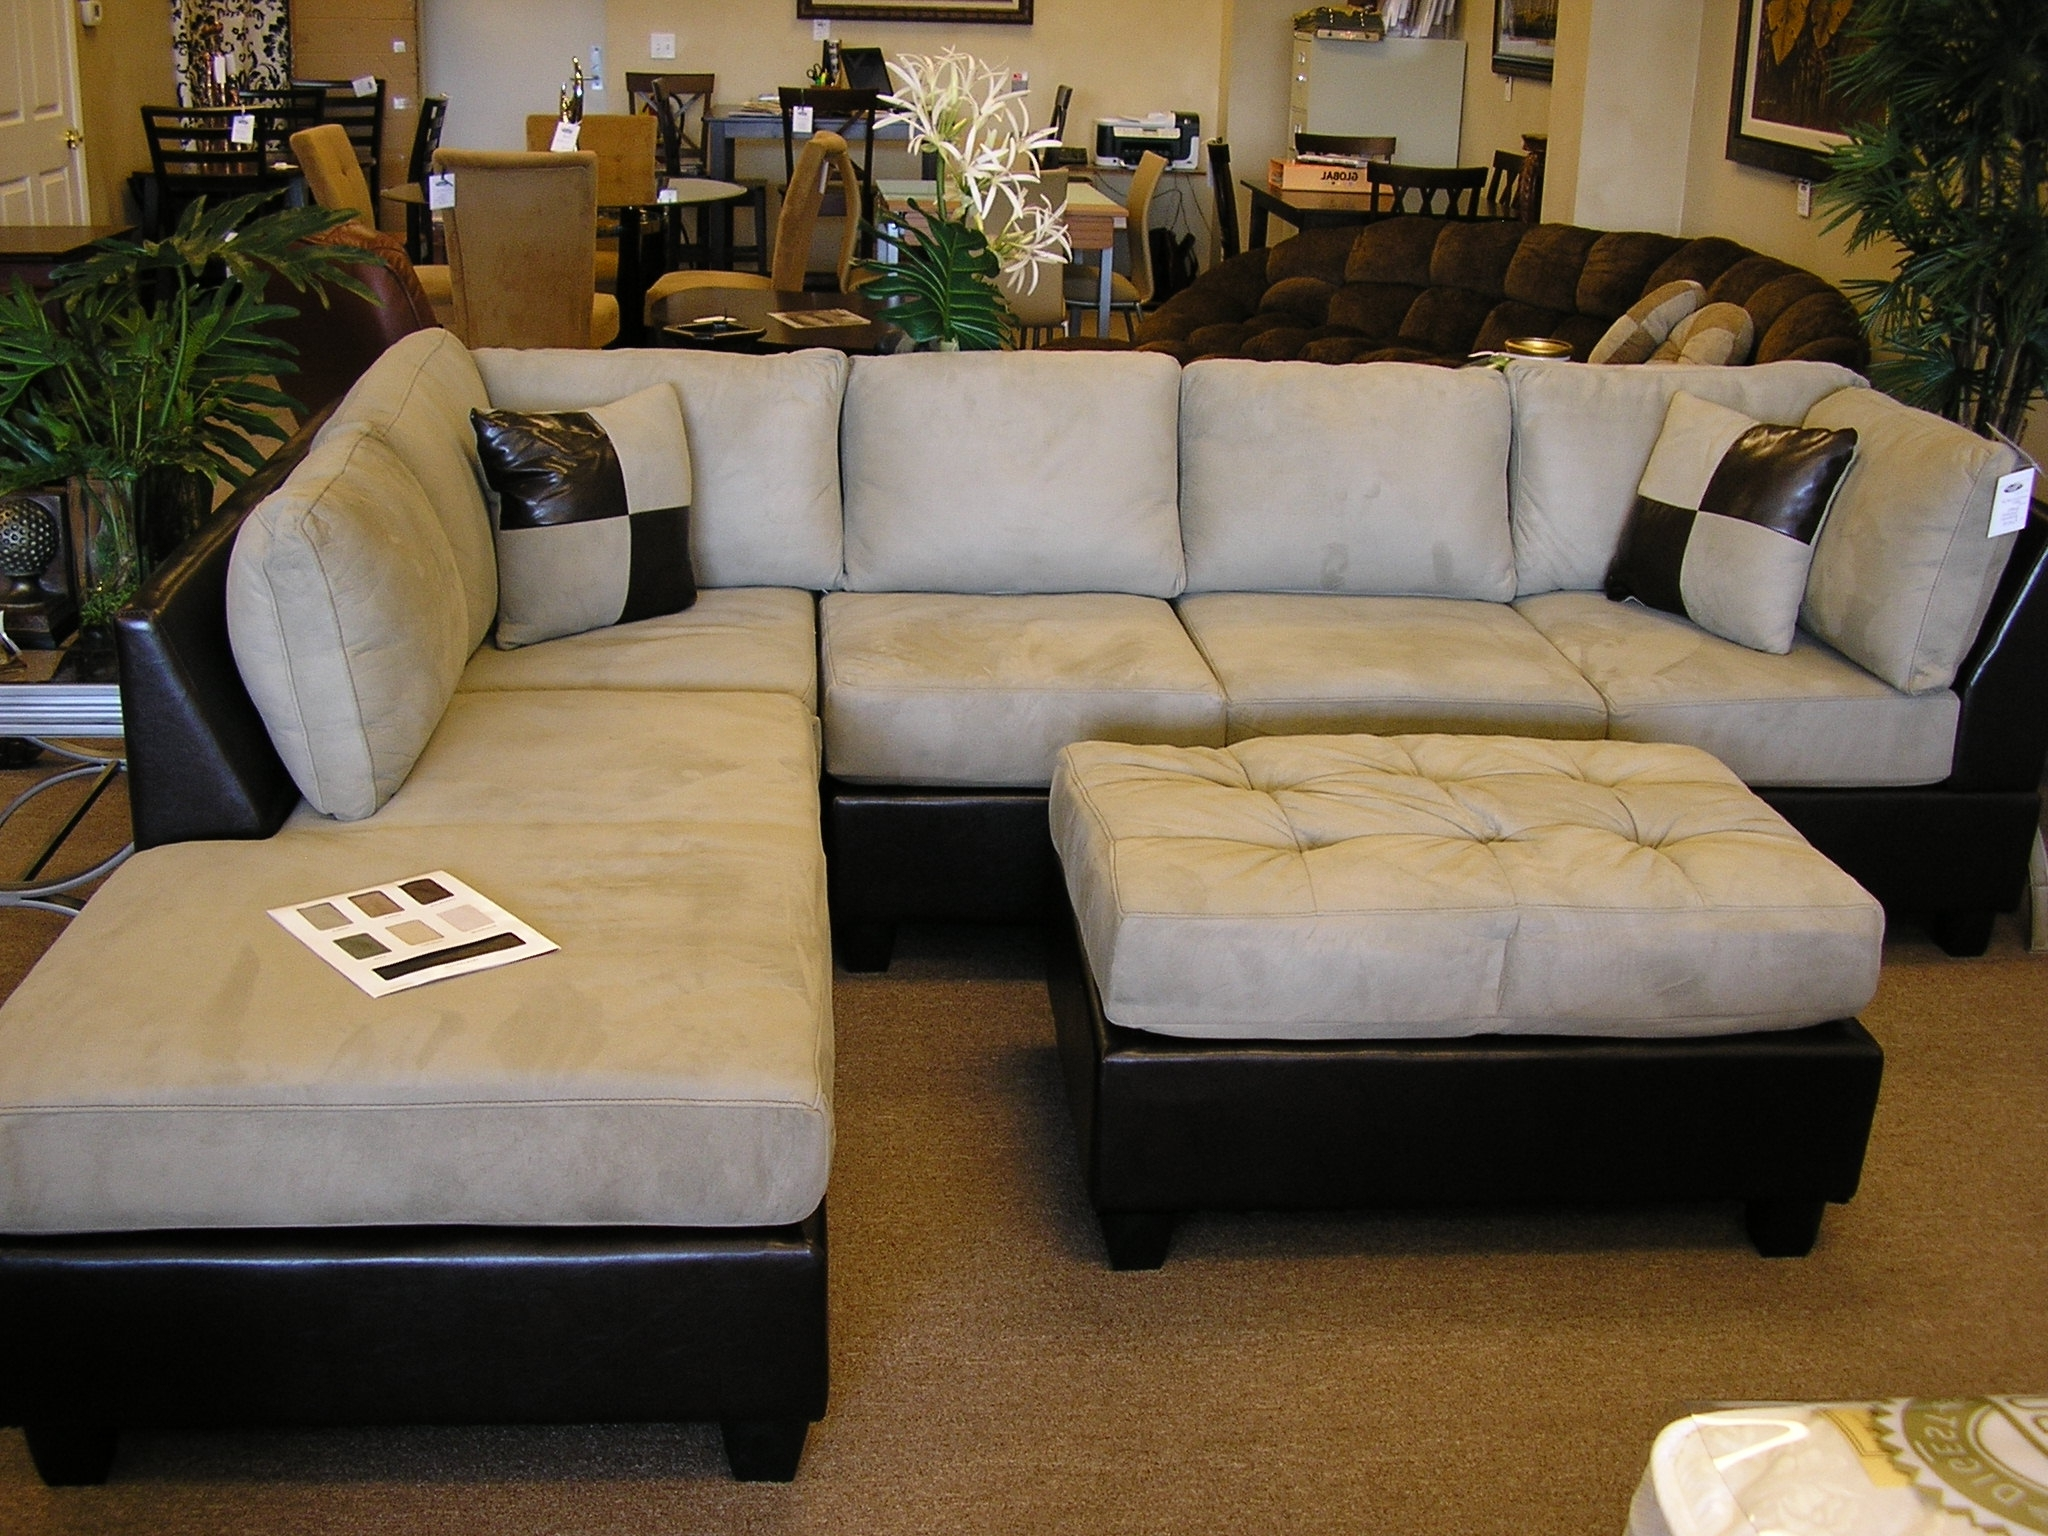 Quatrine Sectional Sofas For Most Up To Date Media Room Sectional Sofas (View 7 of 15)